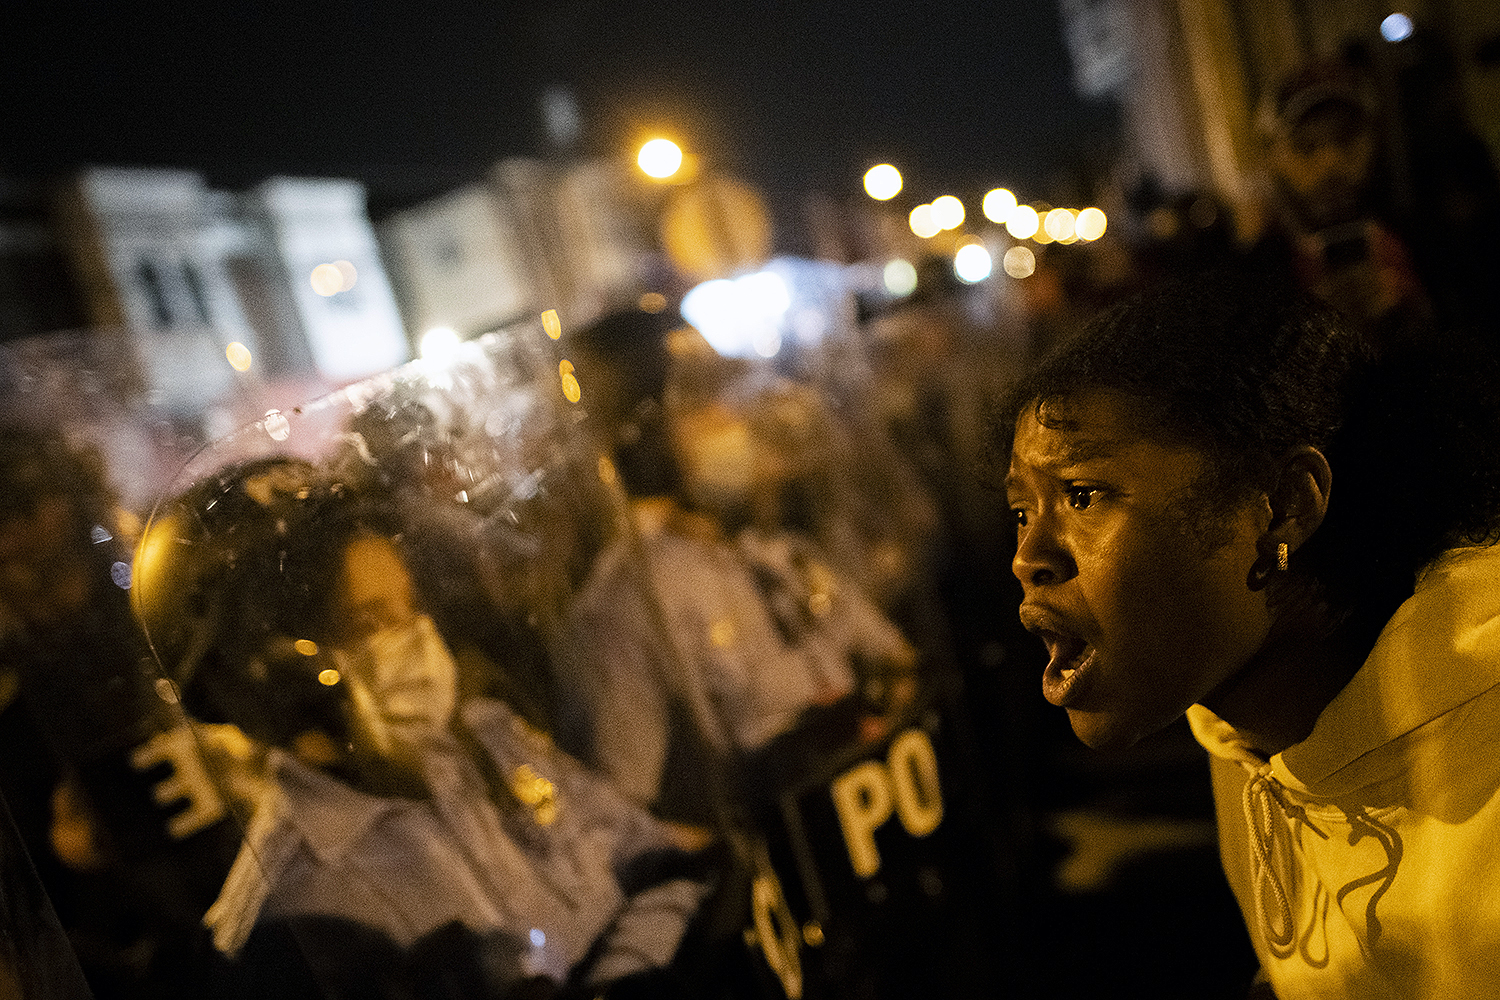 A demonstrator screams at a line of police officers during a protest in Philadelphia on Oct. 27 near the spot where Walter Wallace Jr. was killed by two police officers a day earlier. Protests erupted after the fatal shooting of 27-year-old Wallace Jr., a Black man who police say was armed with a knife but whose parents say was bipolar and in crisis at the time of his death. Mark Makela/Getty Images